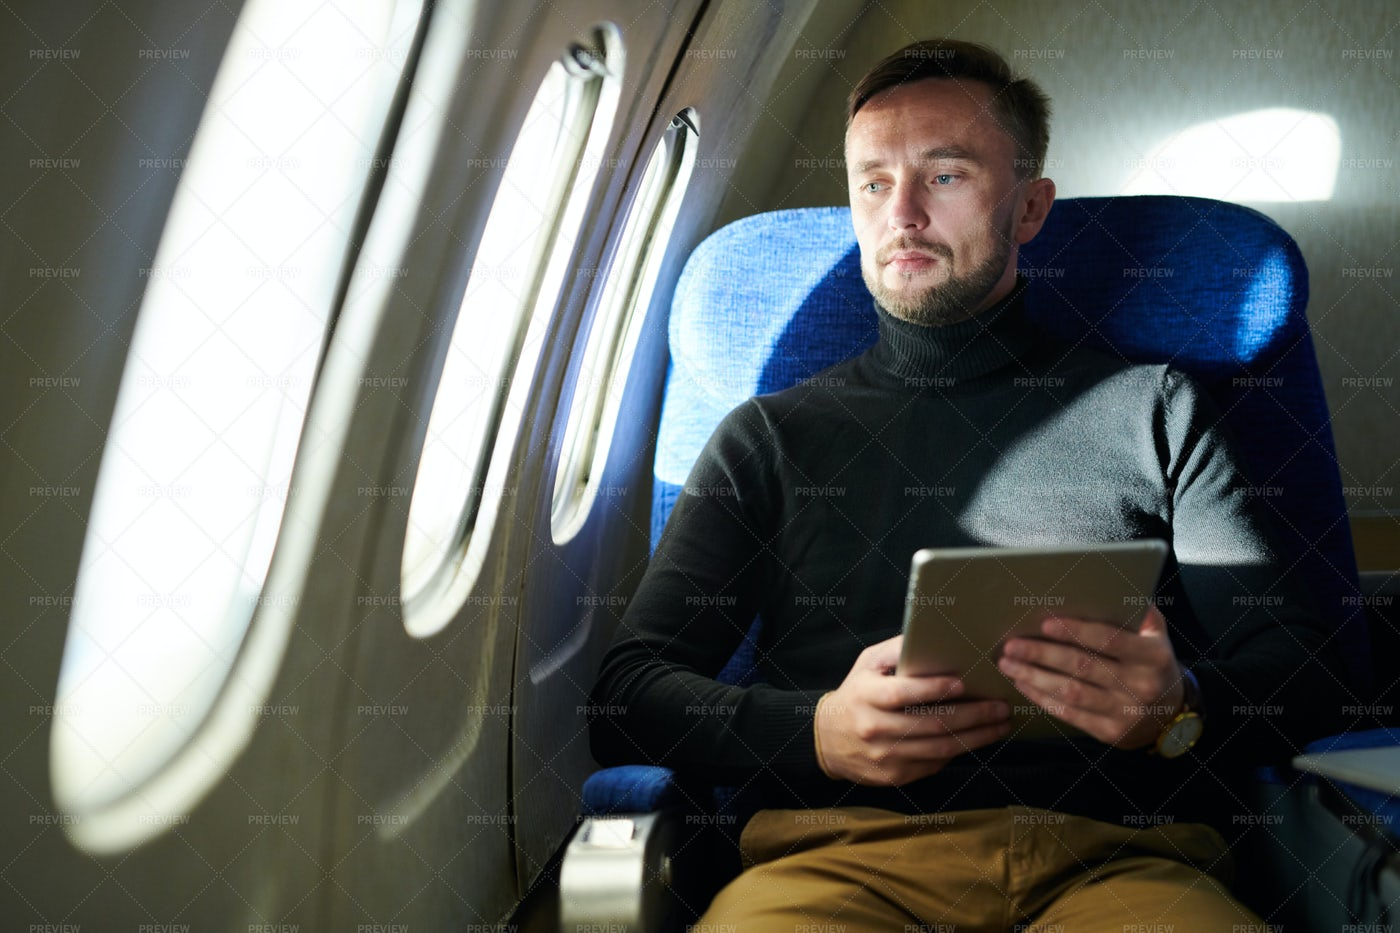 Pensive Man Holding Tablet In...: Stock Photos